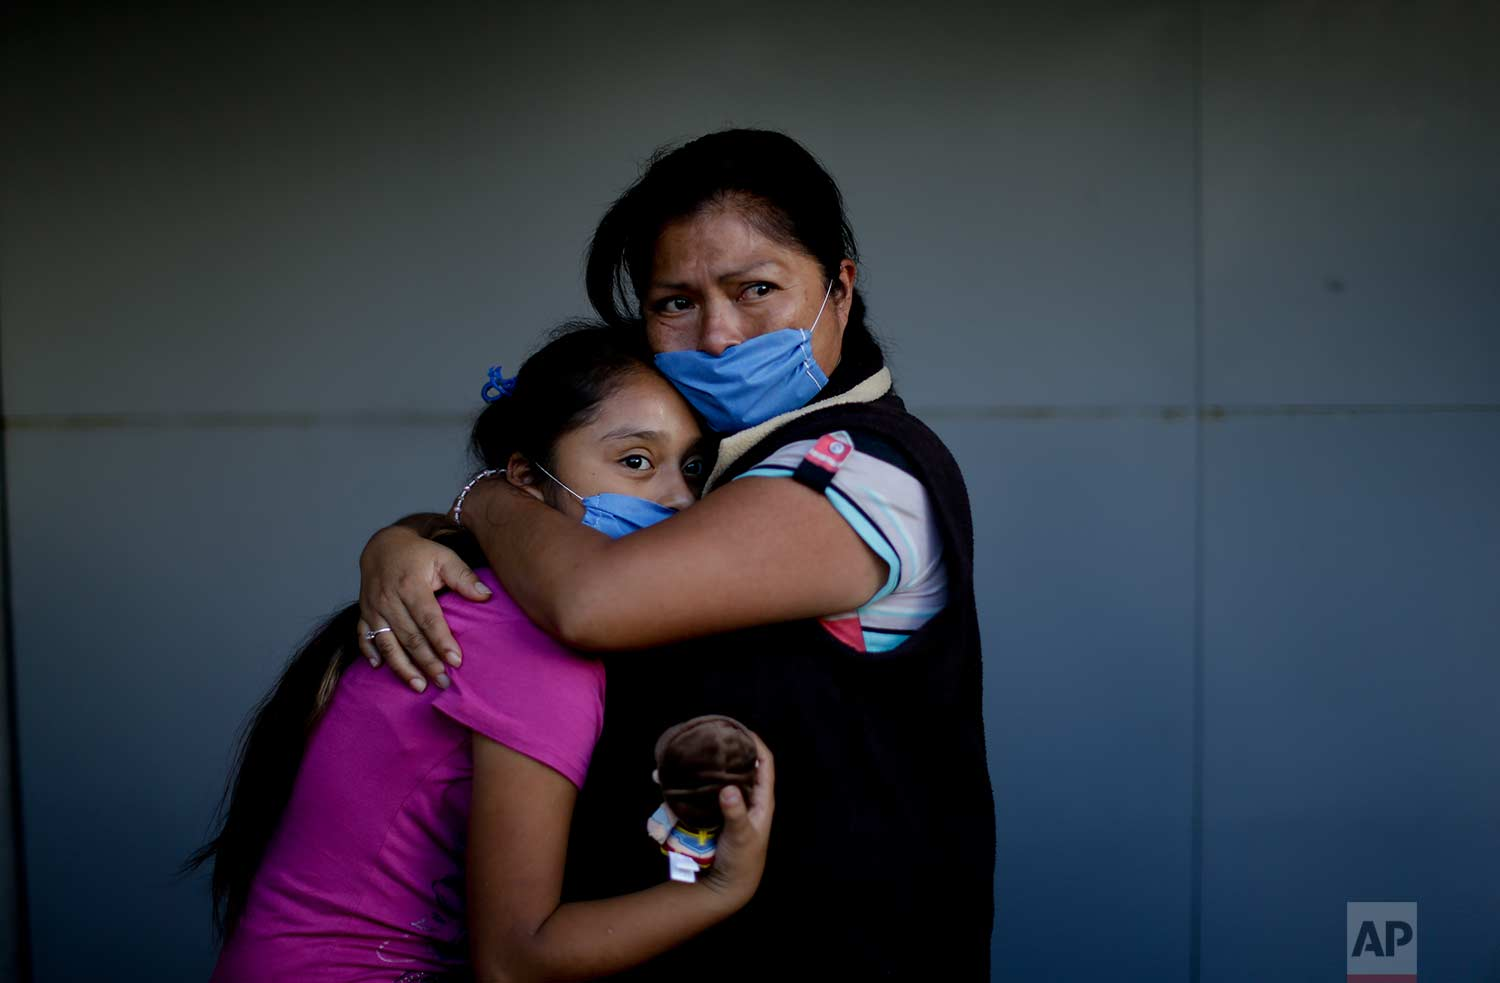 Veronica Aguilar Naranjo embraces her 11-year-old daughter Veronica Villanueva as they look at a collapsed building where people search for survivors, Sept. 22, 2017, after an earthquake in Mexico City. (AP Photo/Natacha Pisarenko)